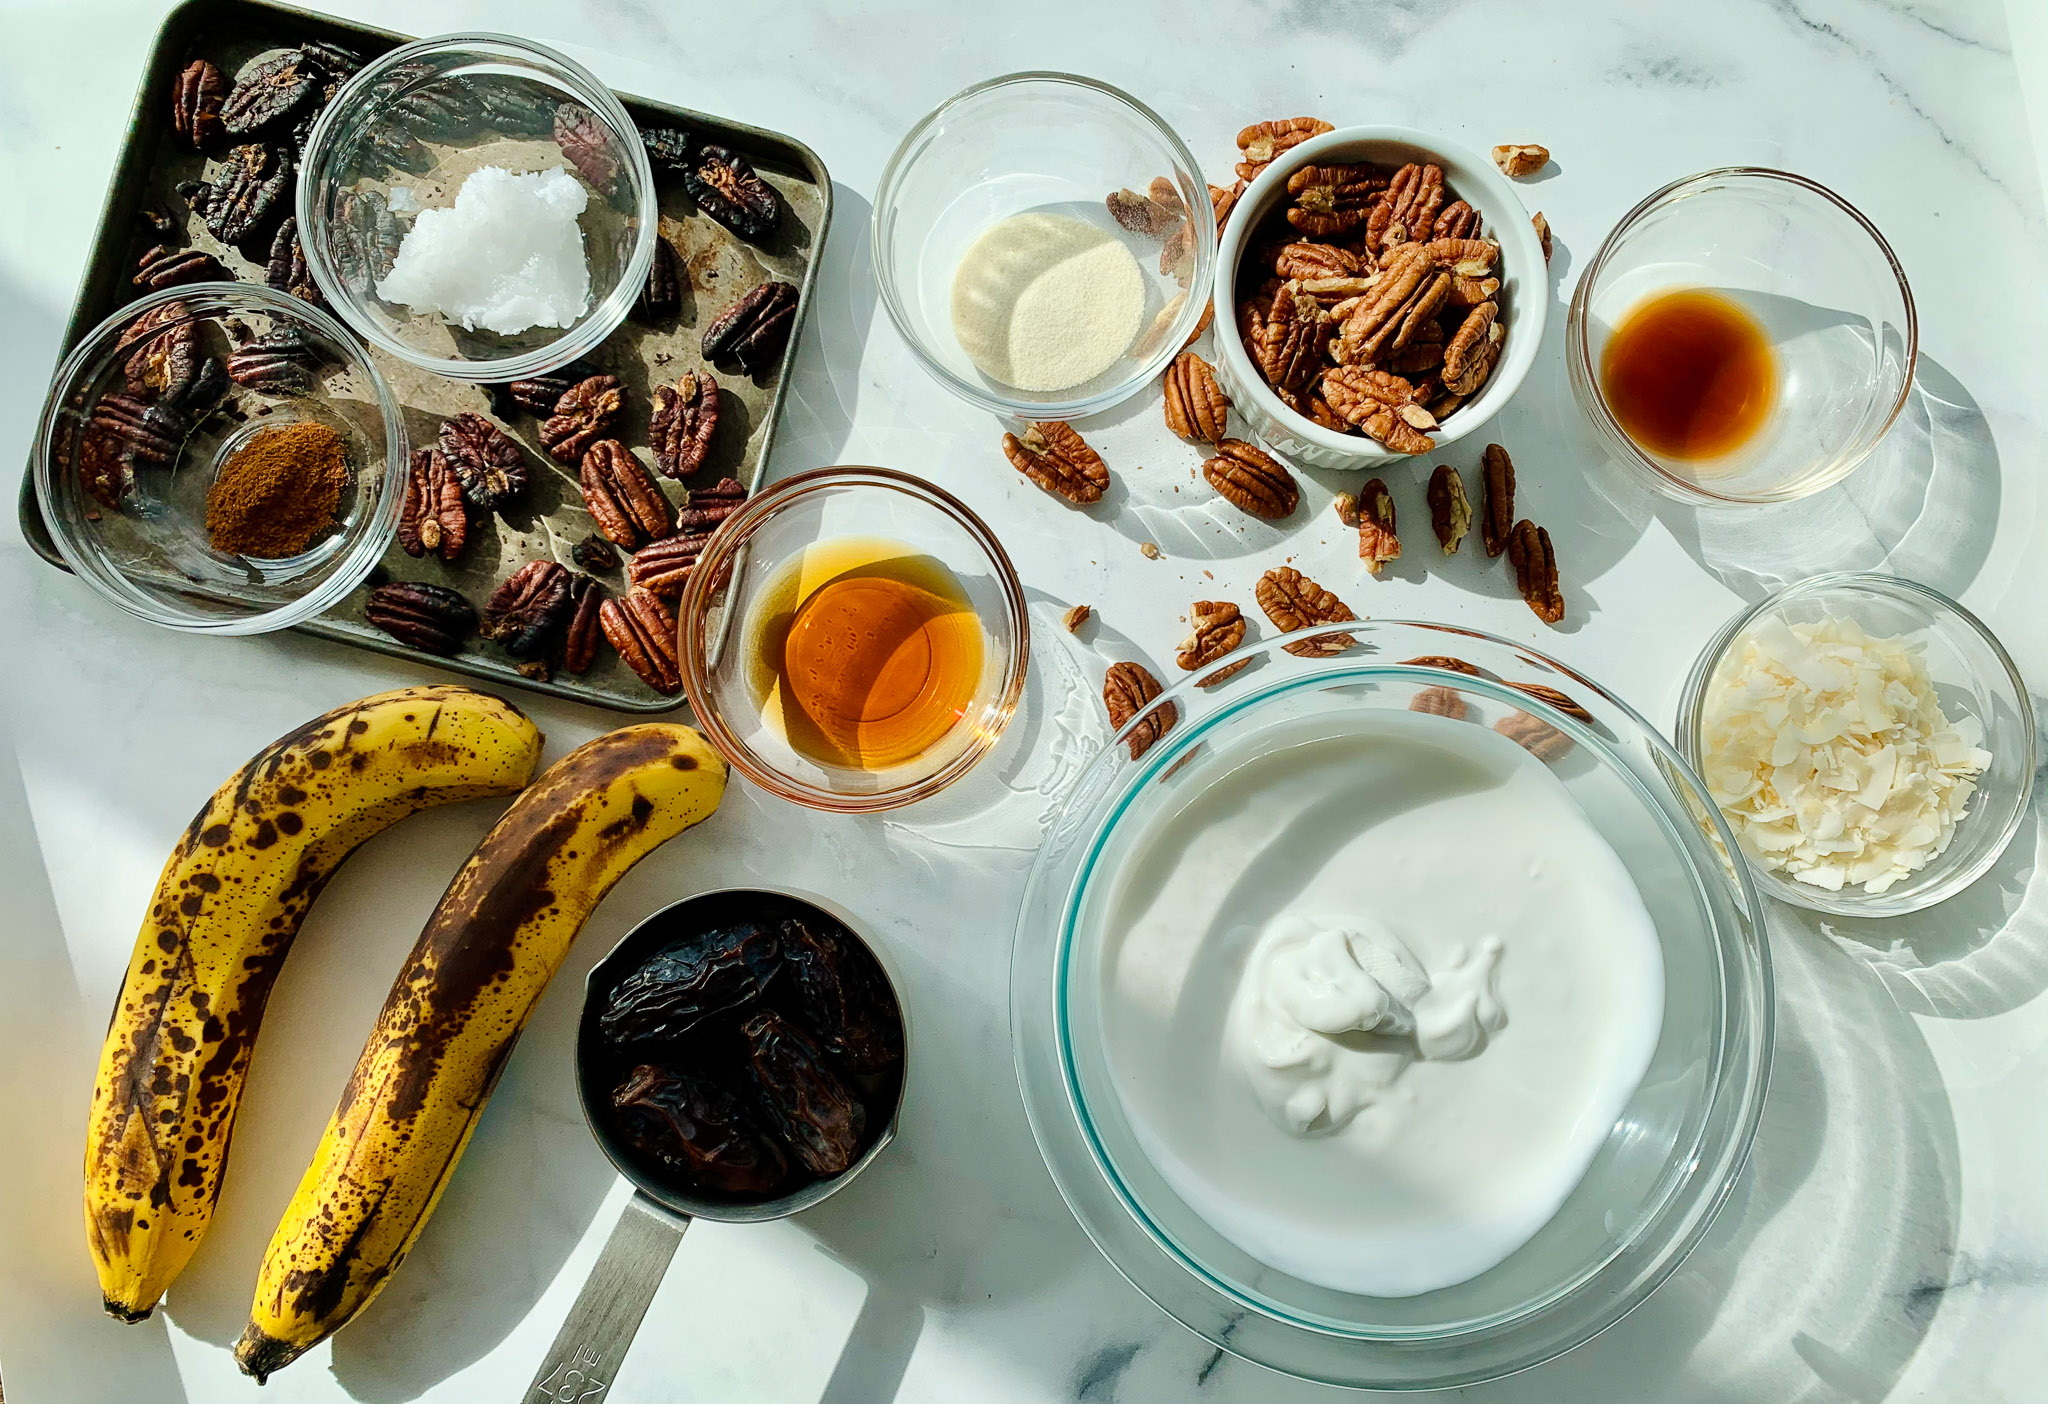 Ingredients for Paleo Banana Pecan Parfaits